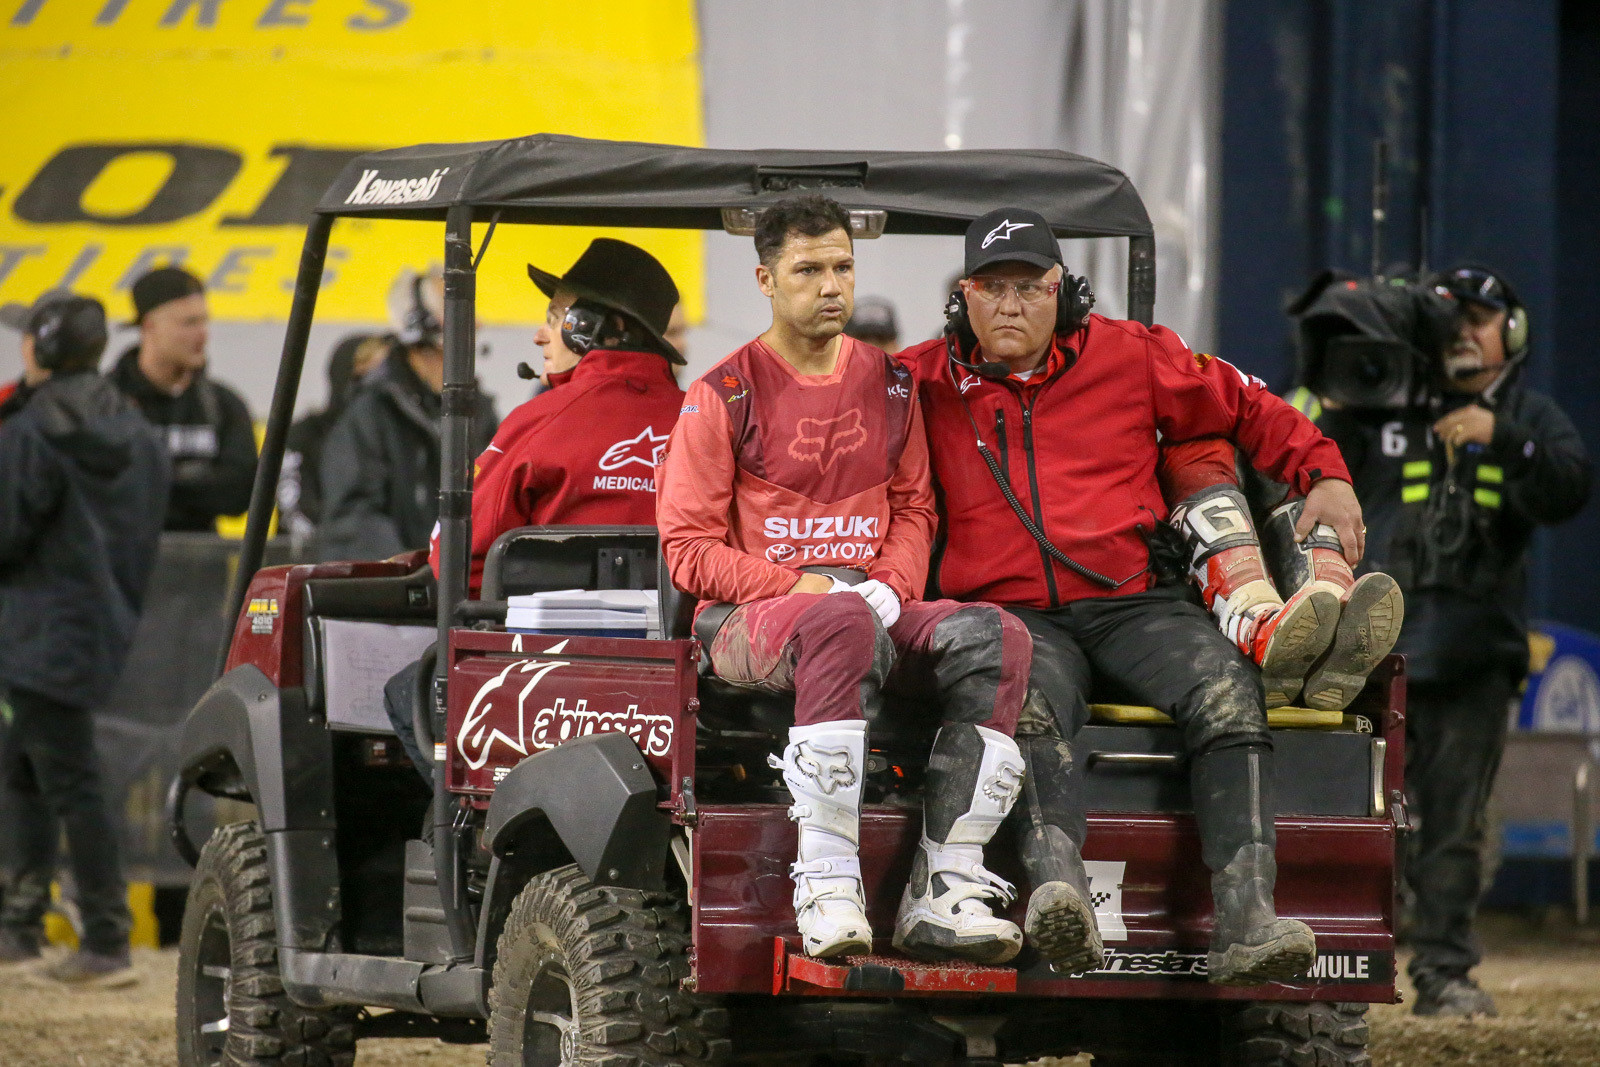 Chad Reed and Justin Brayton on their way to the Alpinestars Mobile Medical unit.